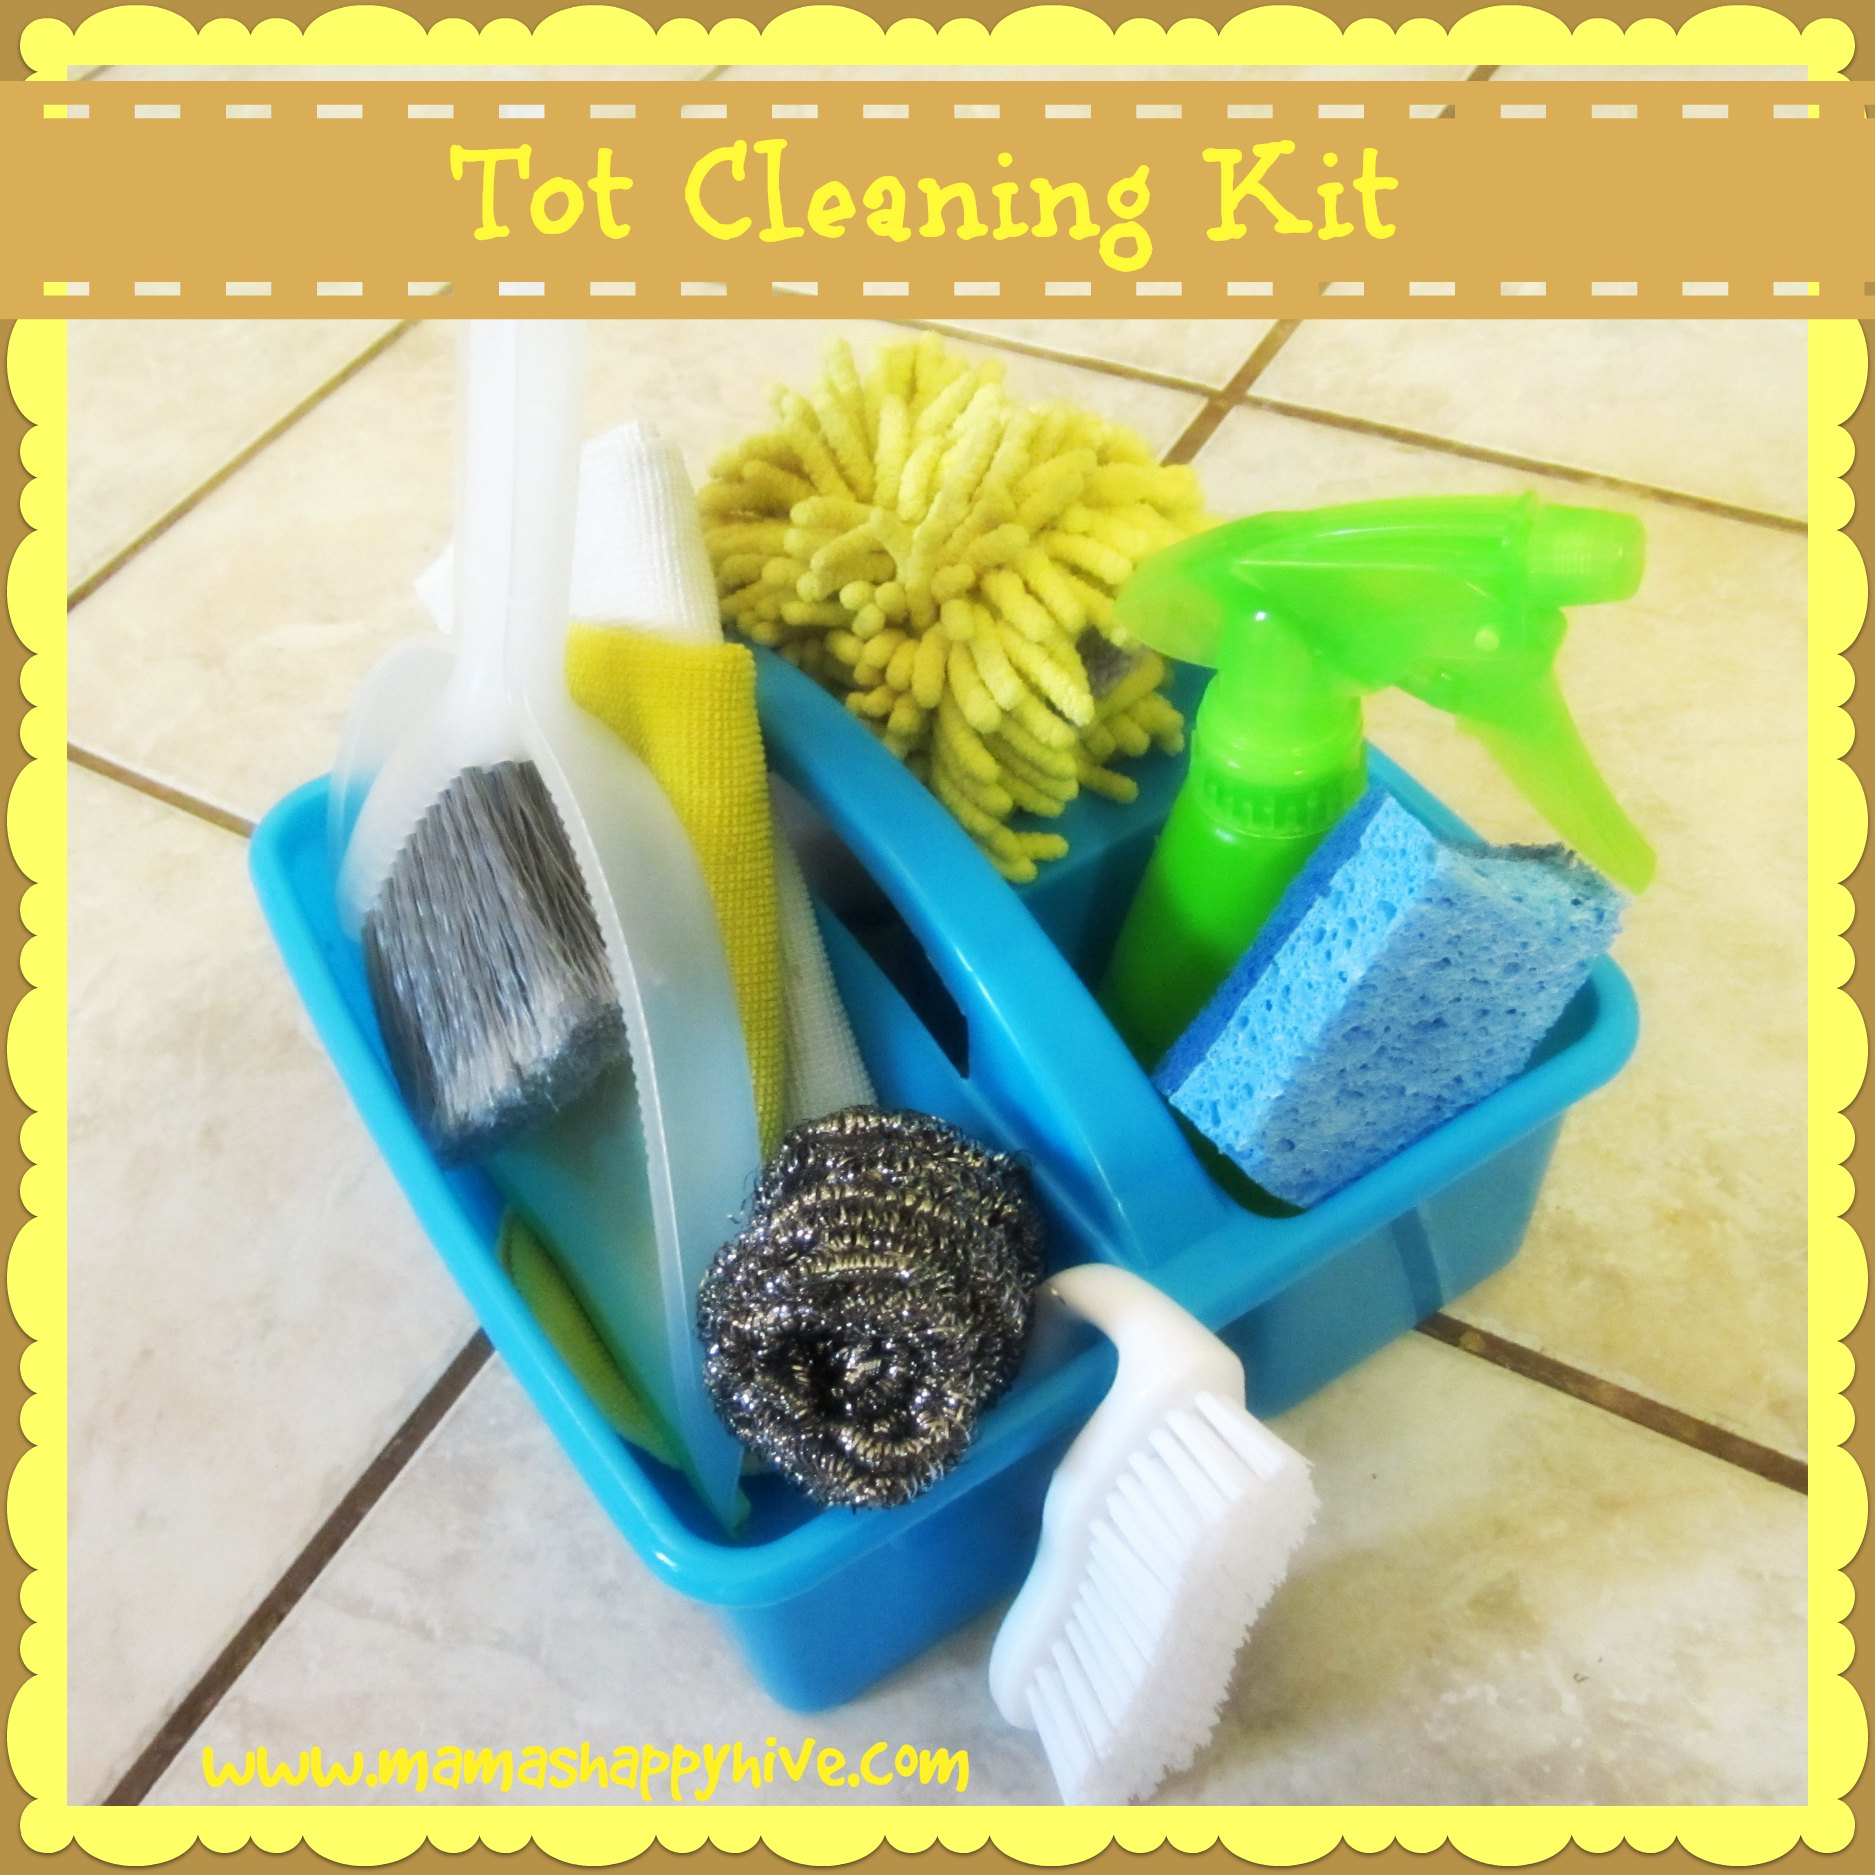 Tot Cleaning Kit - www.mamashappyhive.com